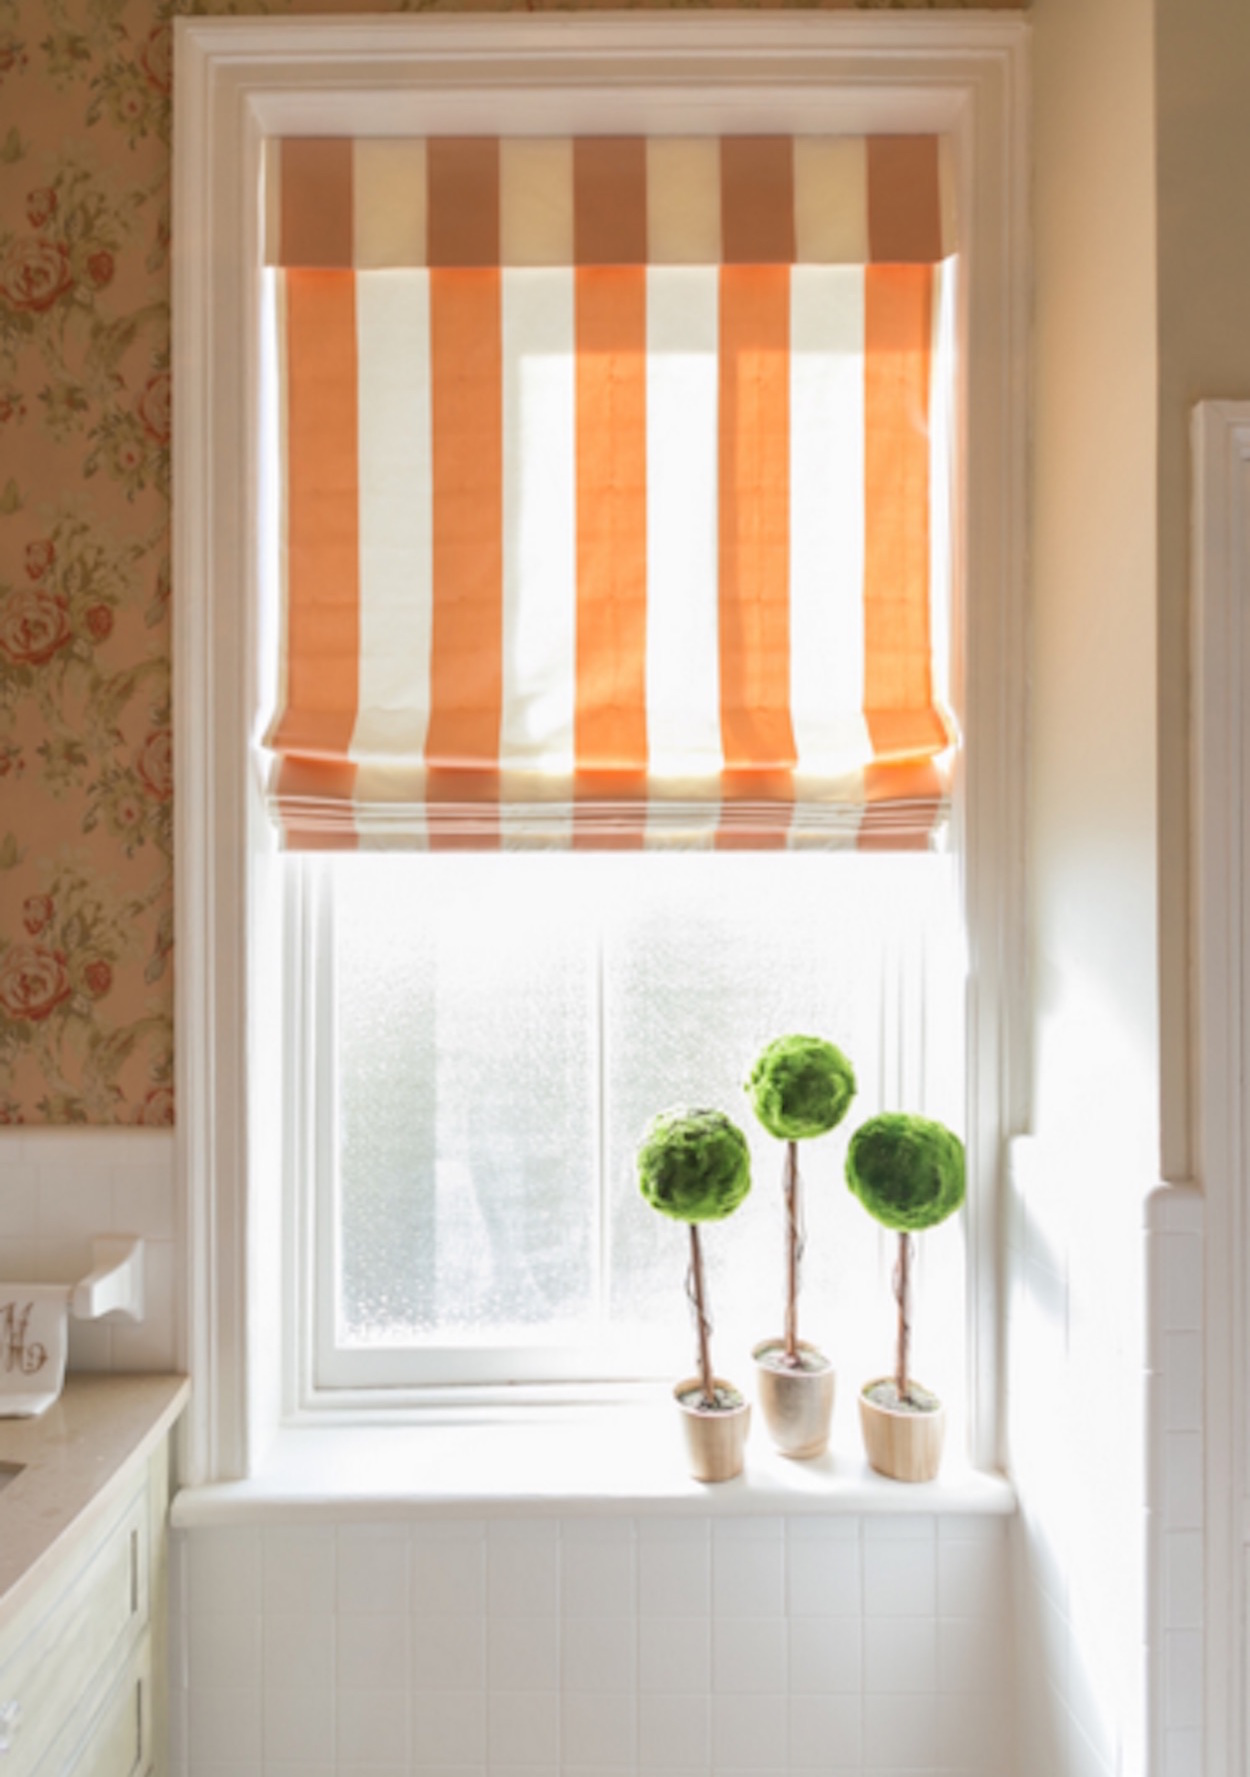 7 Different Bathroom Window Treatments You Might Not Have ...